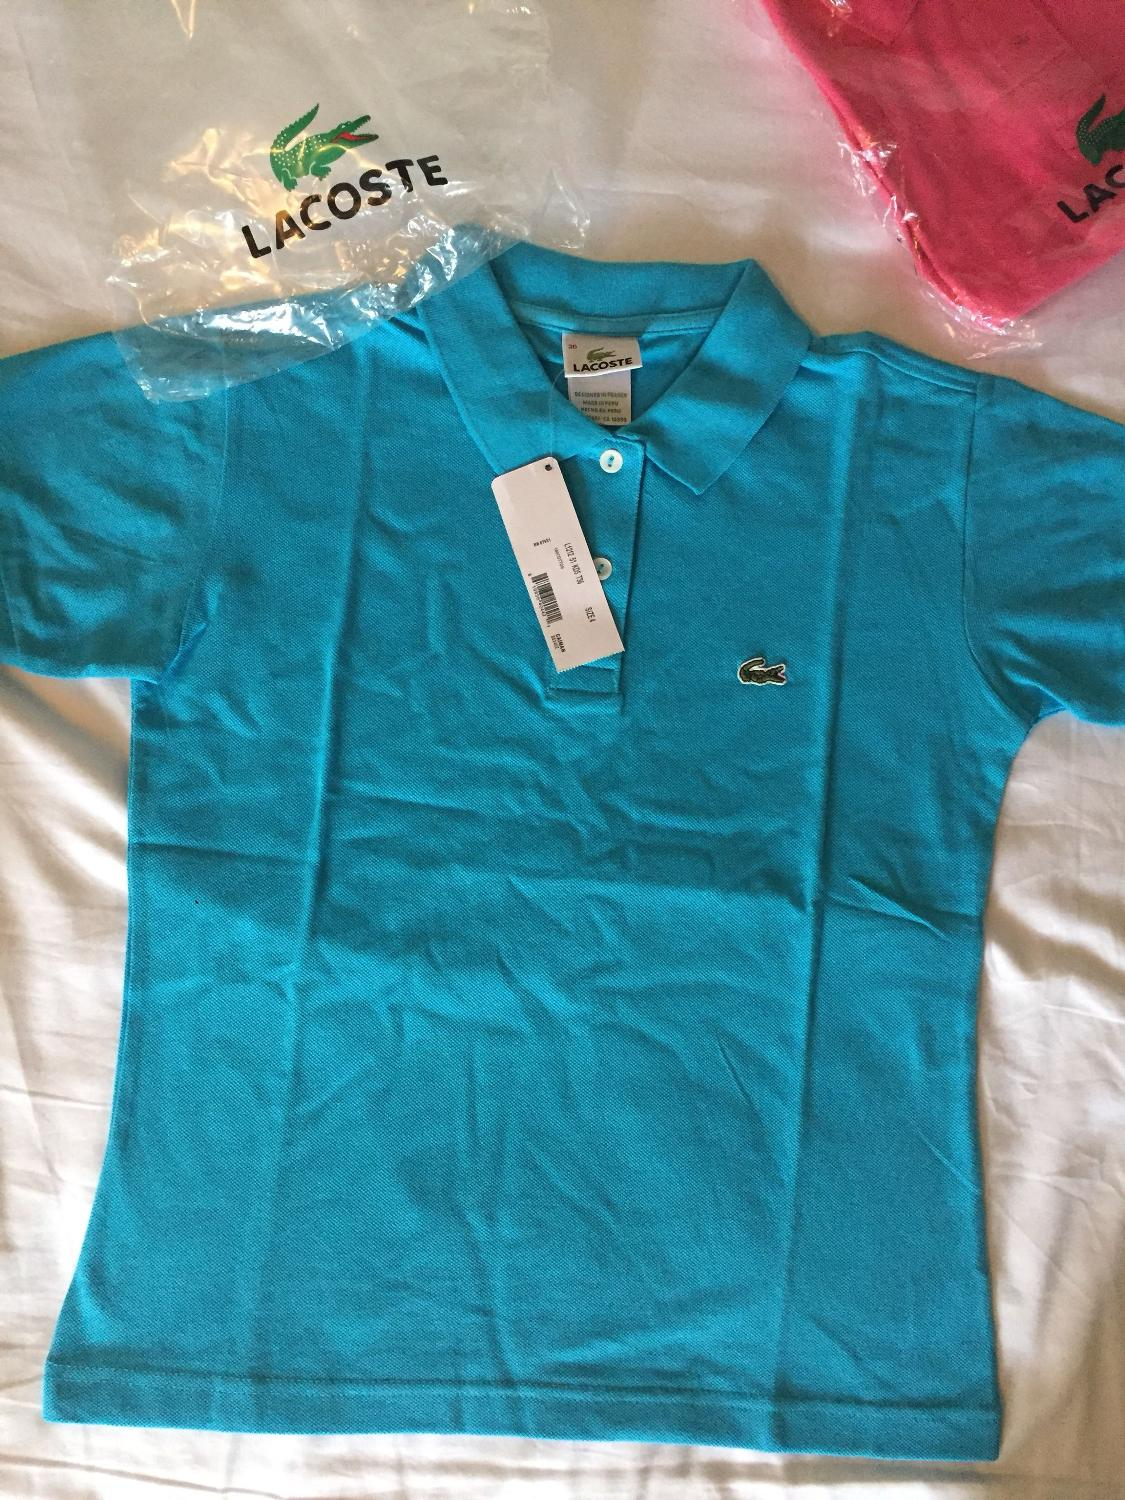 c59af30d4 Authentic Lacoste Polo Shirt For Sale – EDGE Engineering and ...